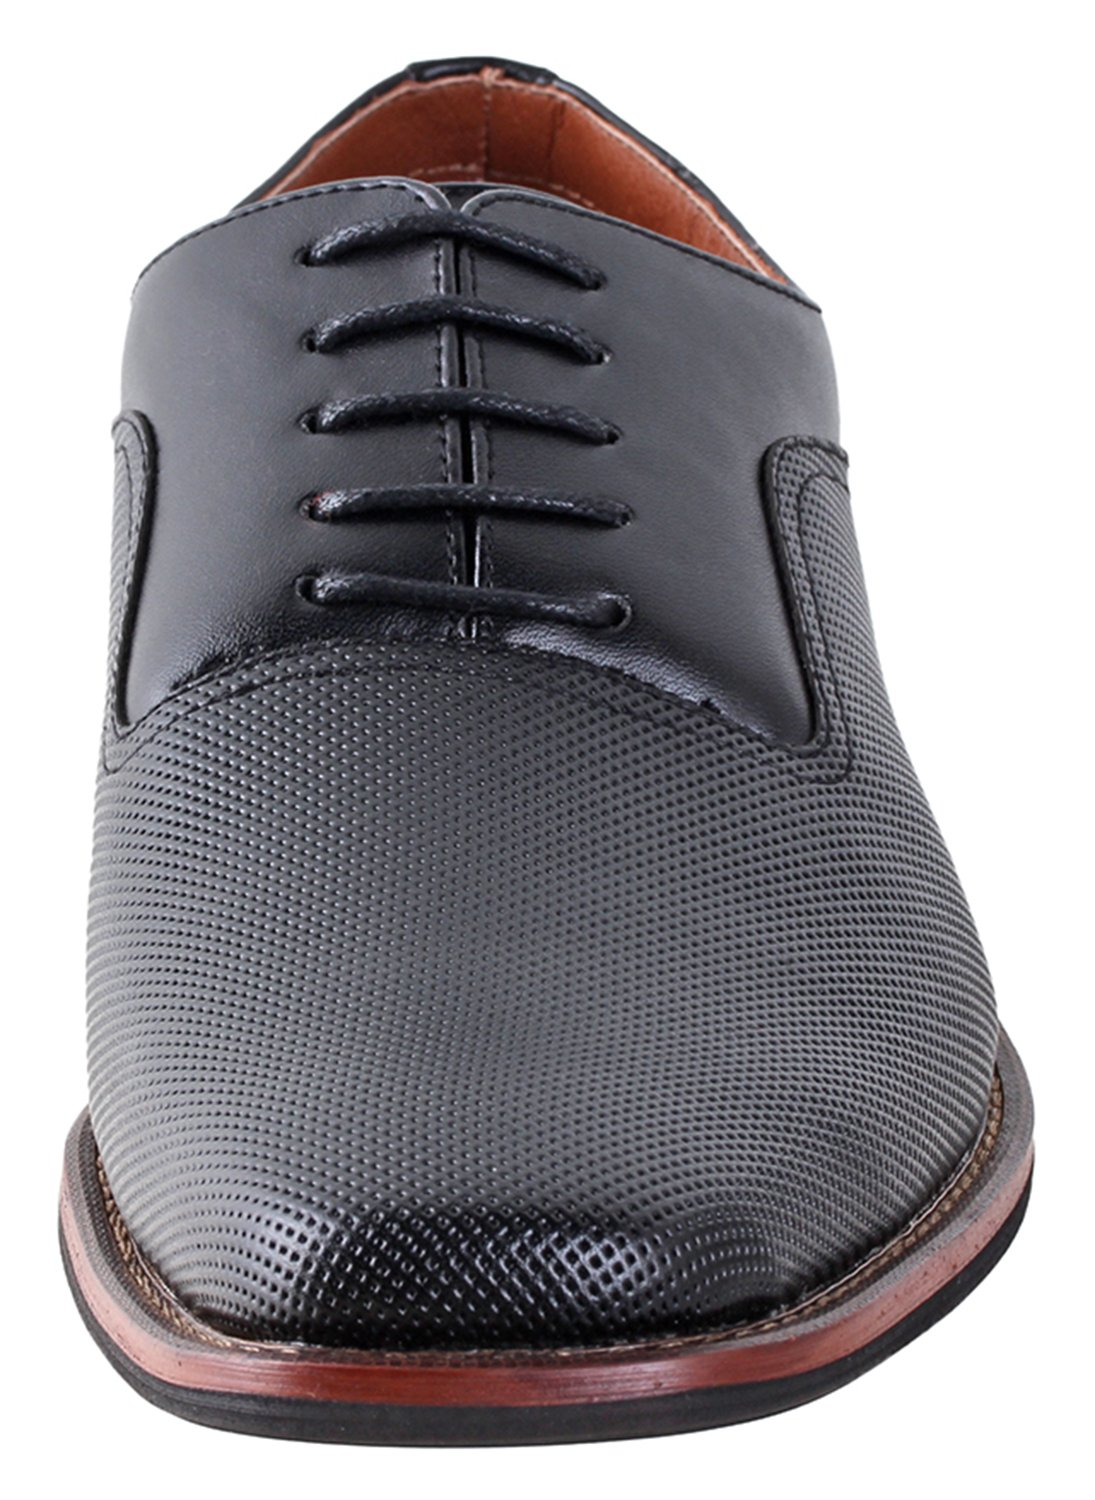 Ferro Aldo Mens Lalo Oxford Dress Shoes  e1389aacd6d